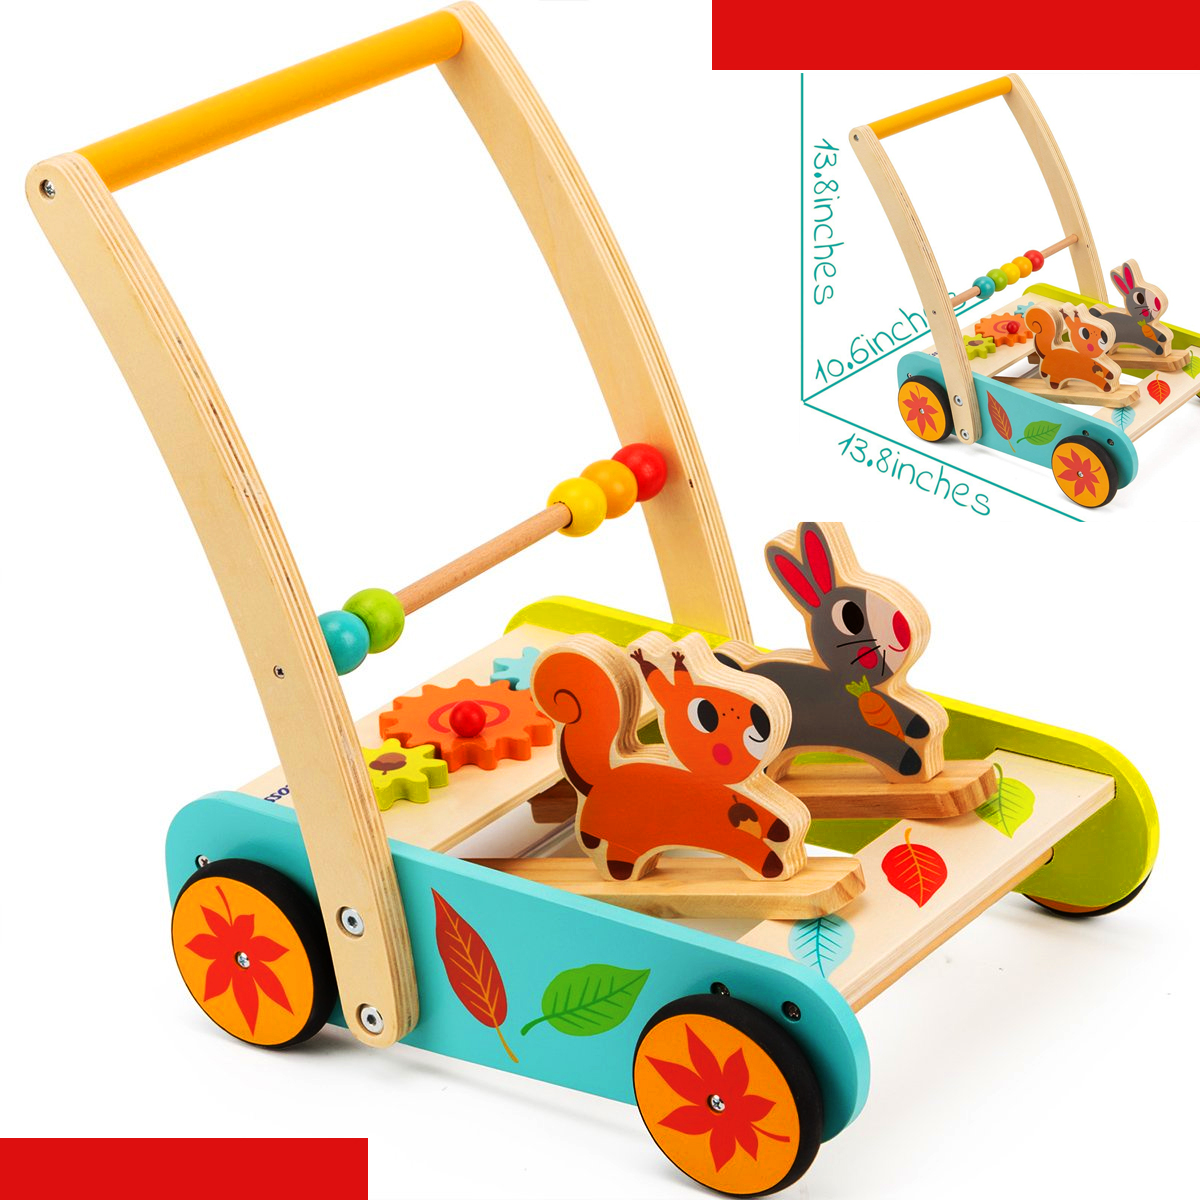 Cossy Wooden Rabbit and roll baby walker